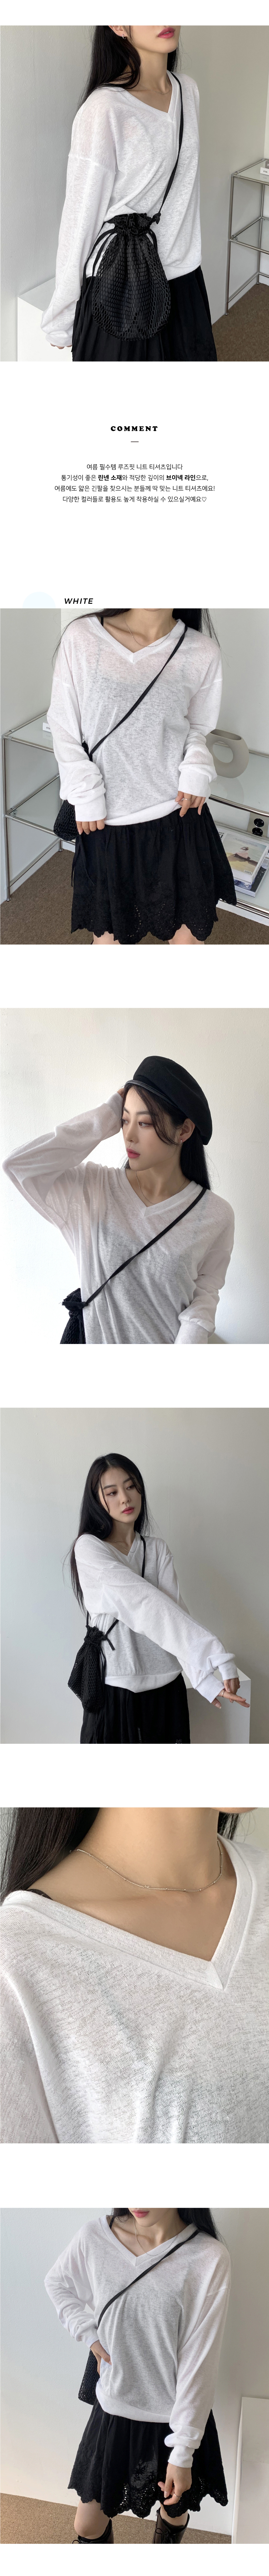 Cony V-Neck Loose-fit Summer Knitwear T-Shirt